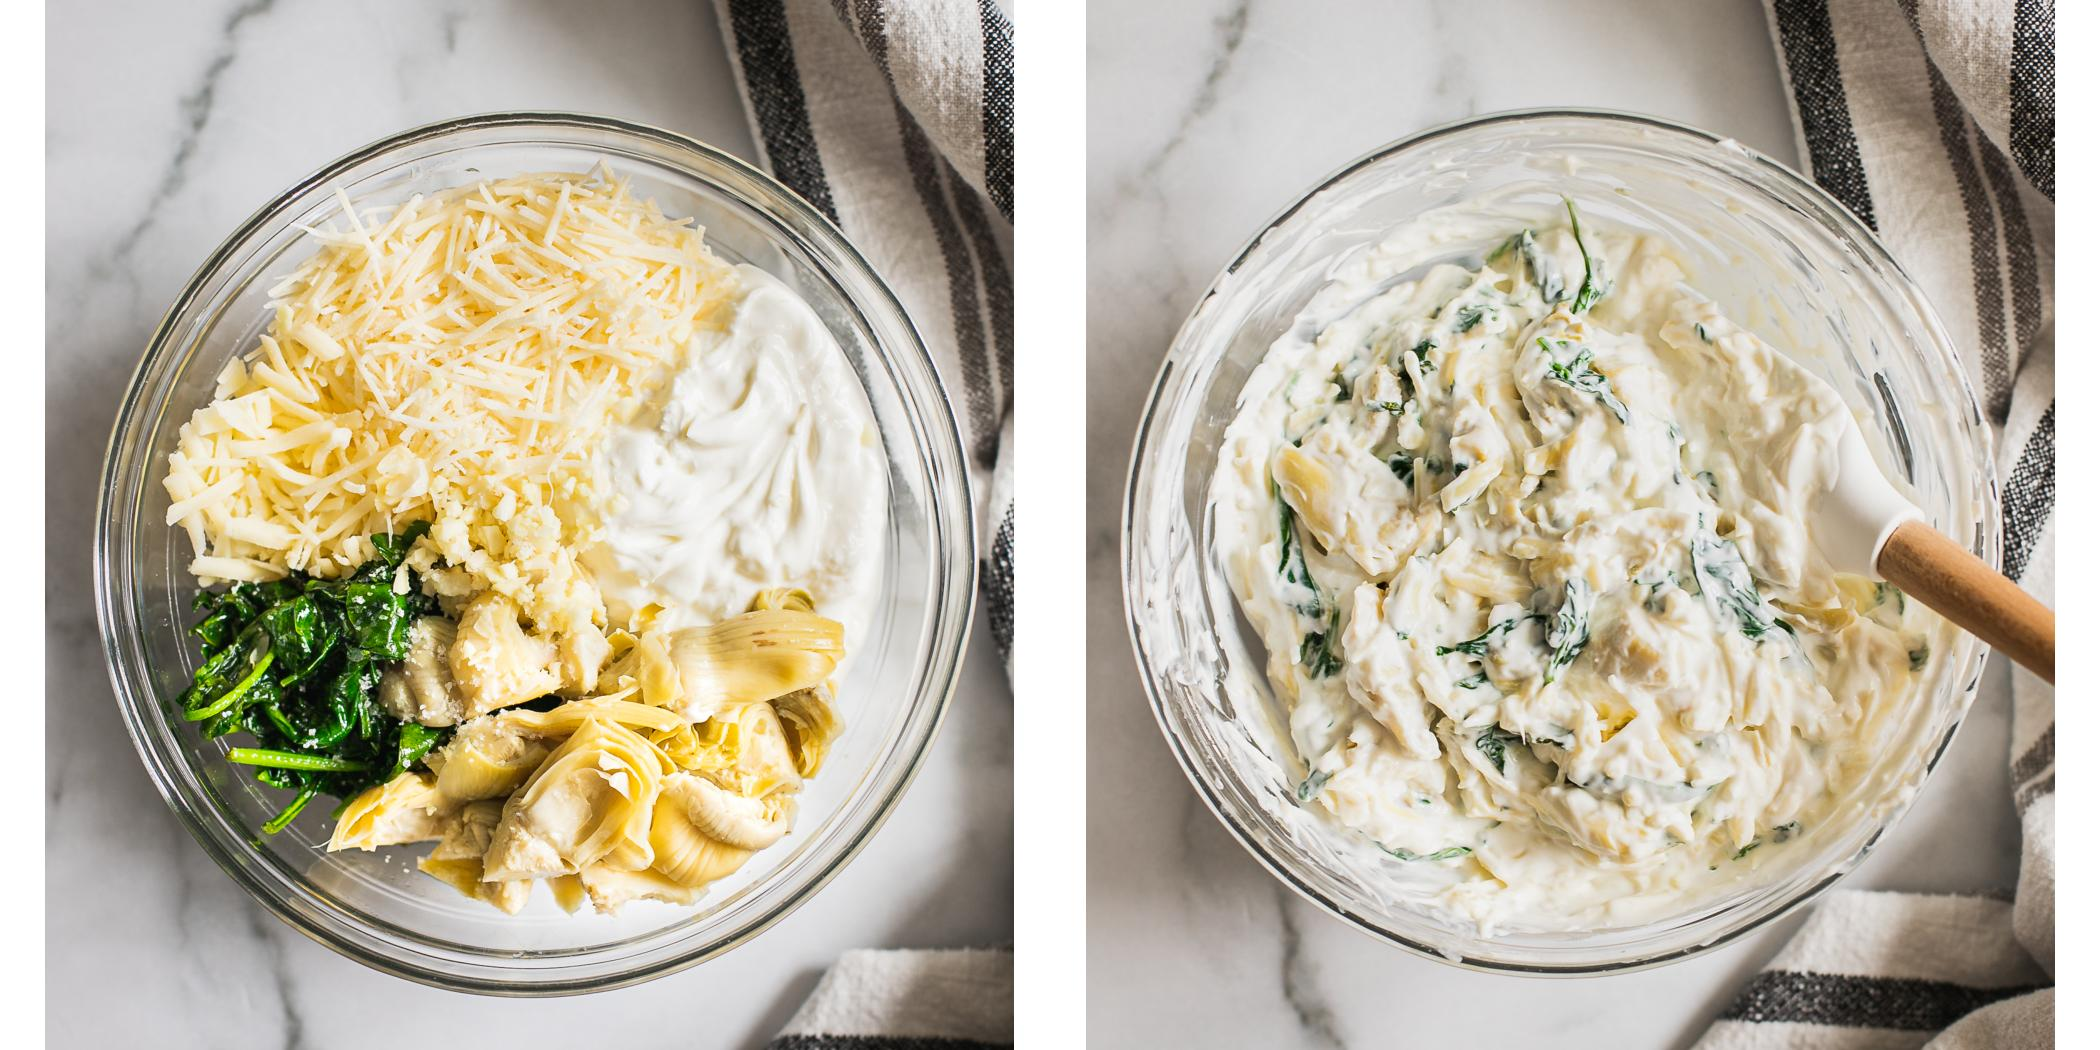 Ingredients for healthy spinach artichoke dip. Before and after photo of mixed ingredients together.